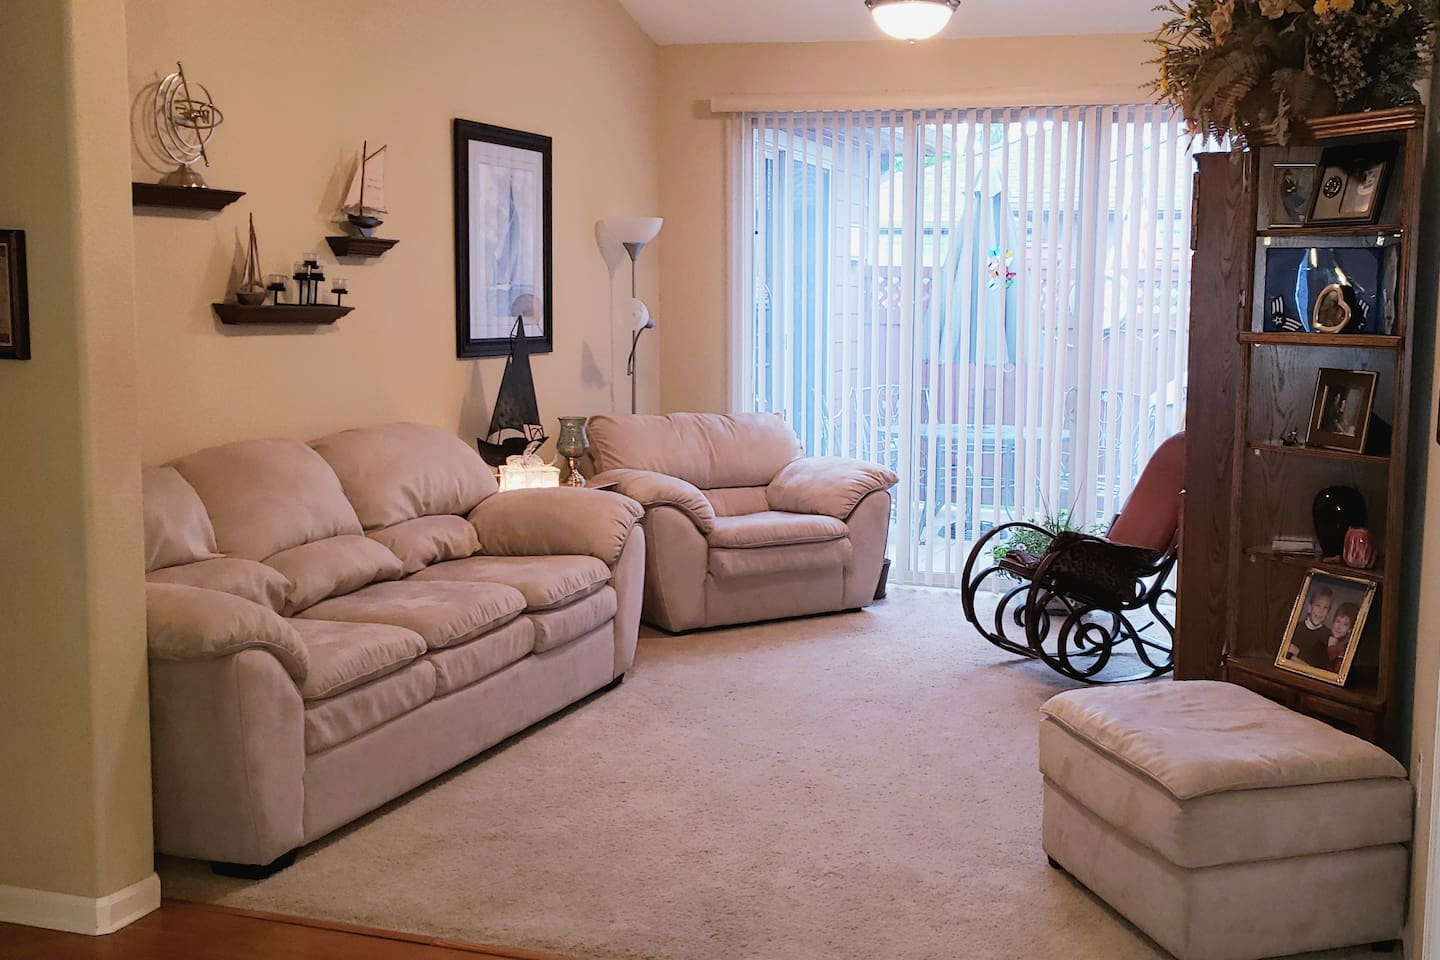 Shared living room with pull out couch.